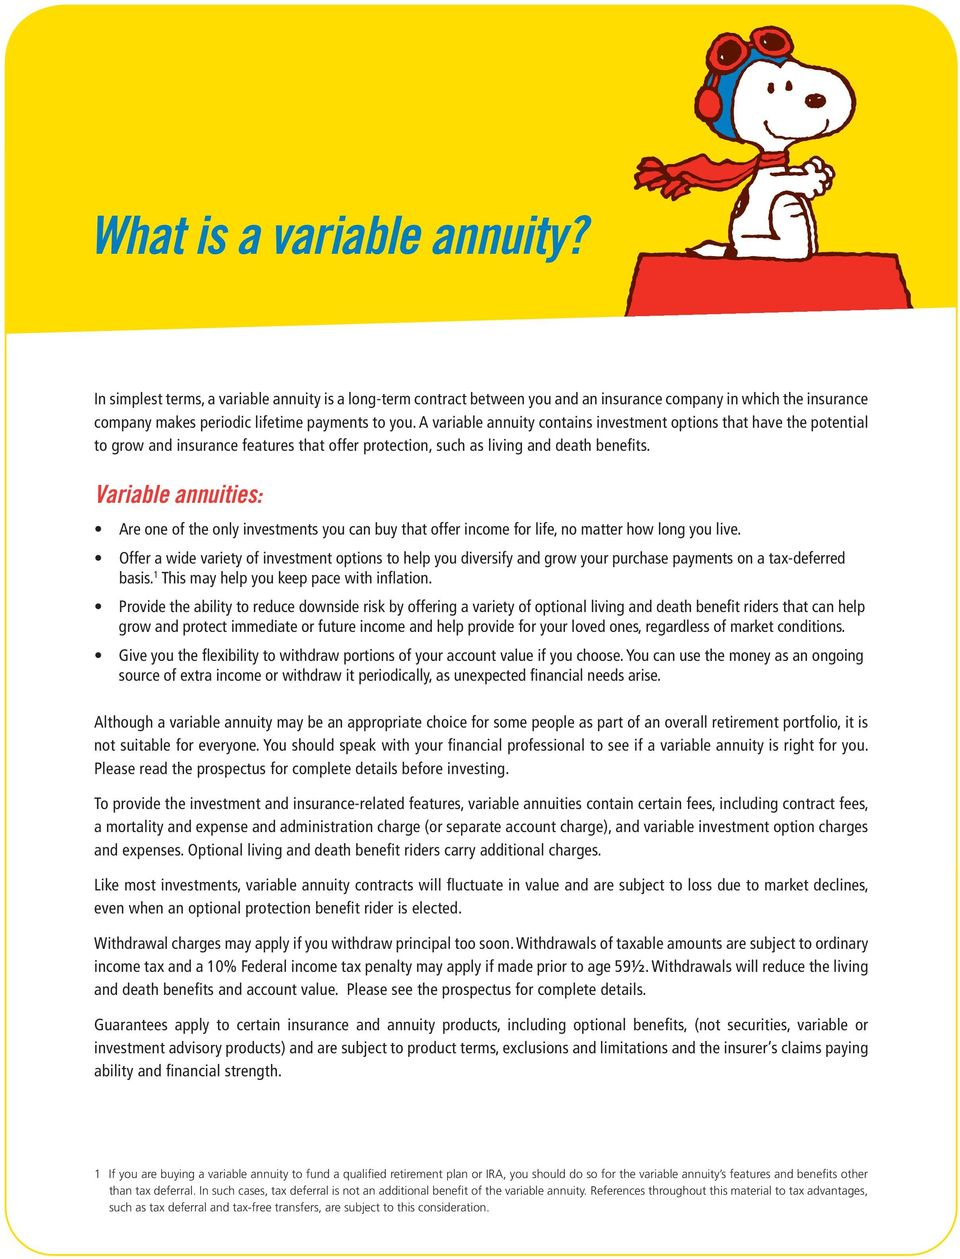 Variable annuities: Are one of the only investments you can buy that offer income for life, no matter how long you live.